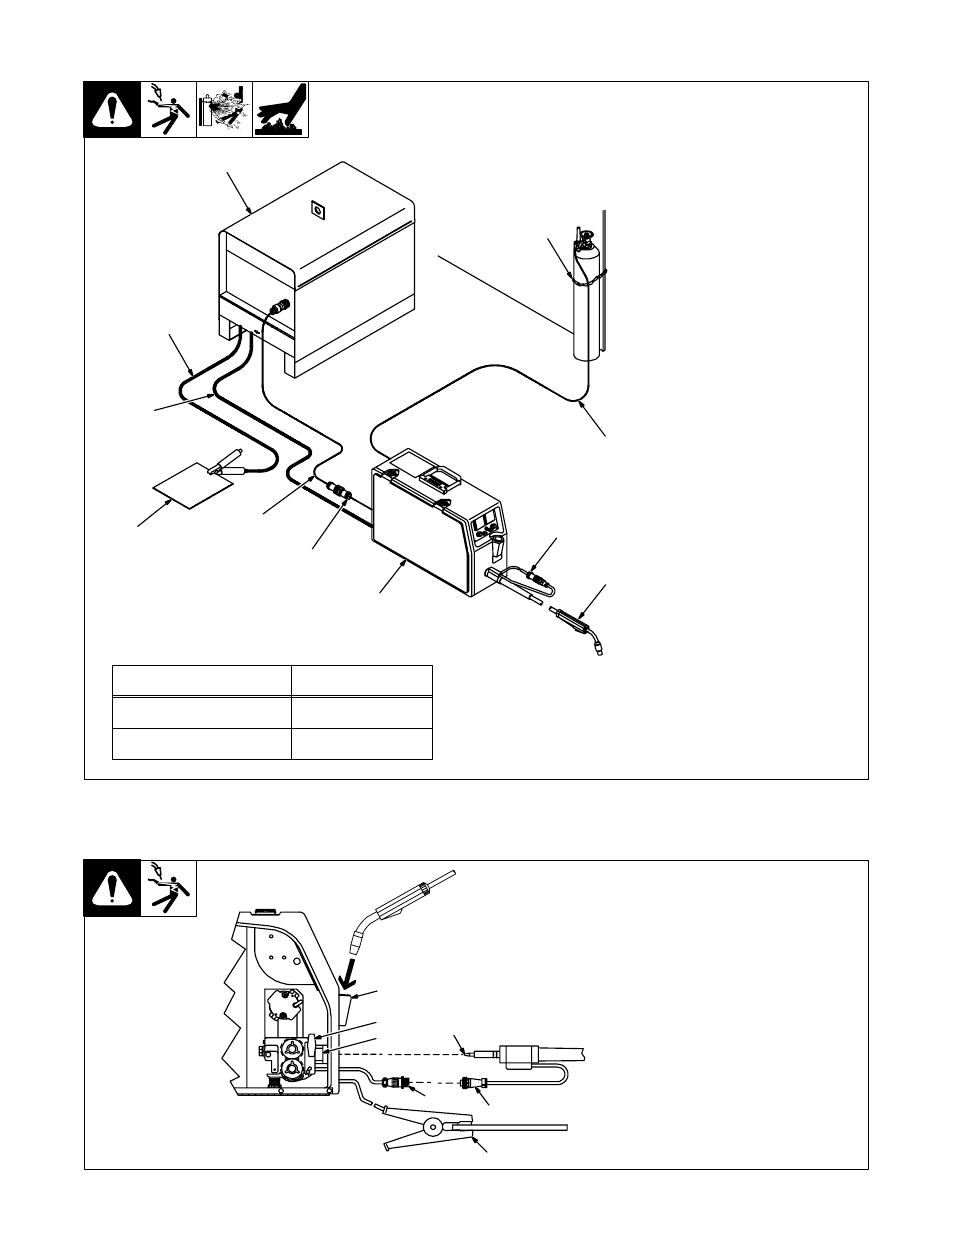 Miller 6 Pin Plug Wiring Diagram Libraries 115 Vac 2 Equipment Connection Electric S 22p12 User